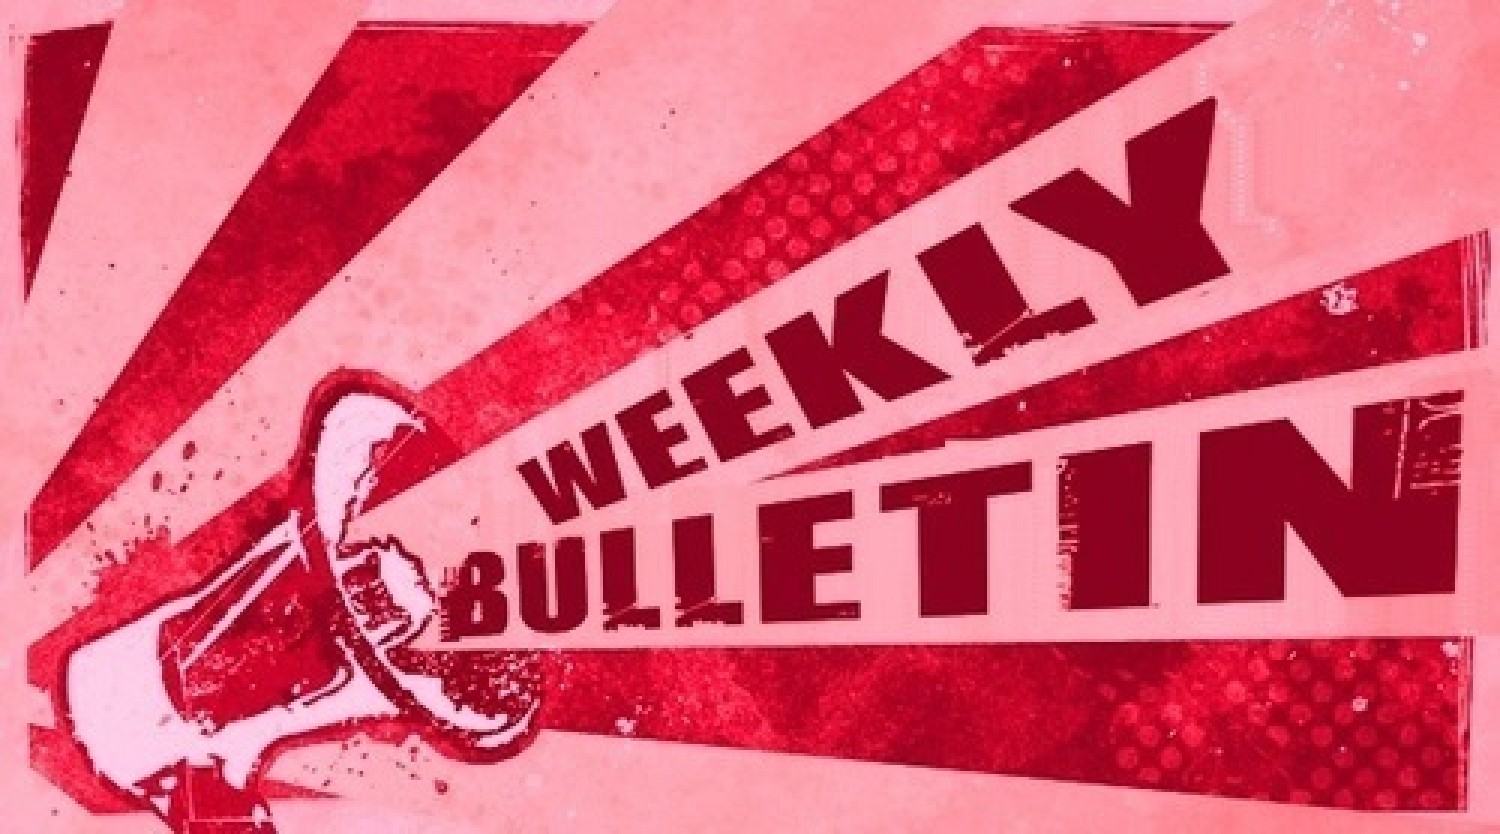 Weekly Bulletin July 12th